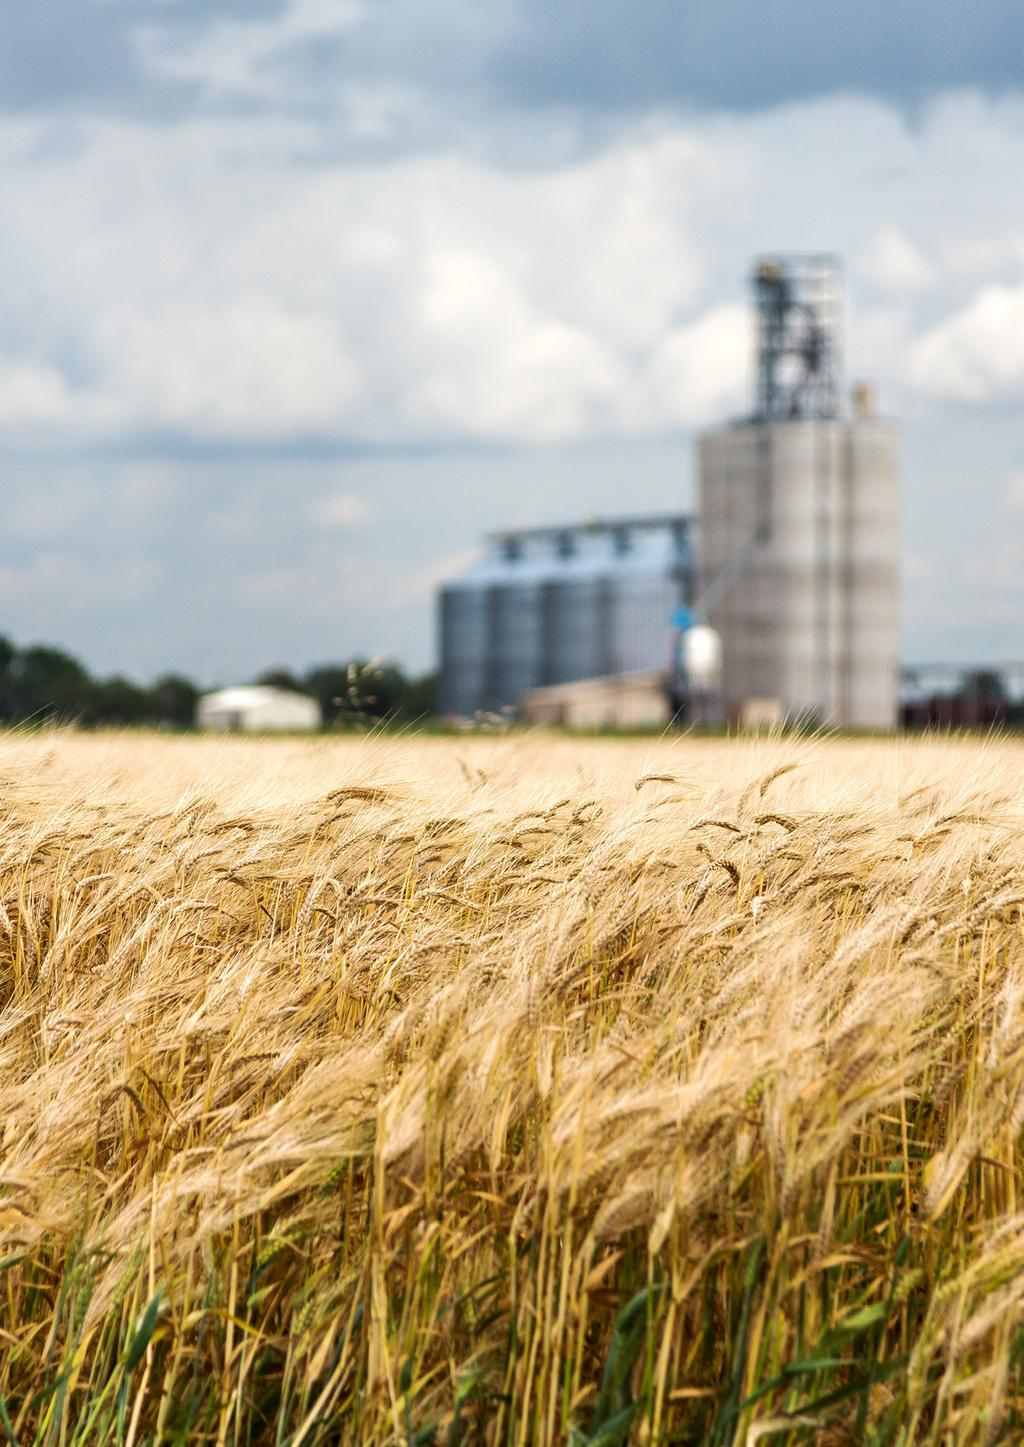 It is hoped the findings of this report will help establish grain fibre as a key